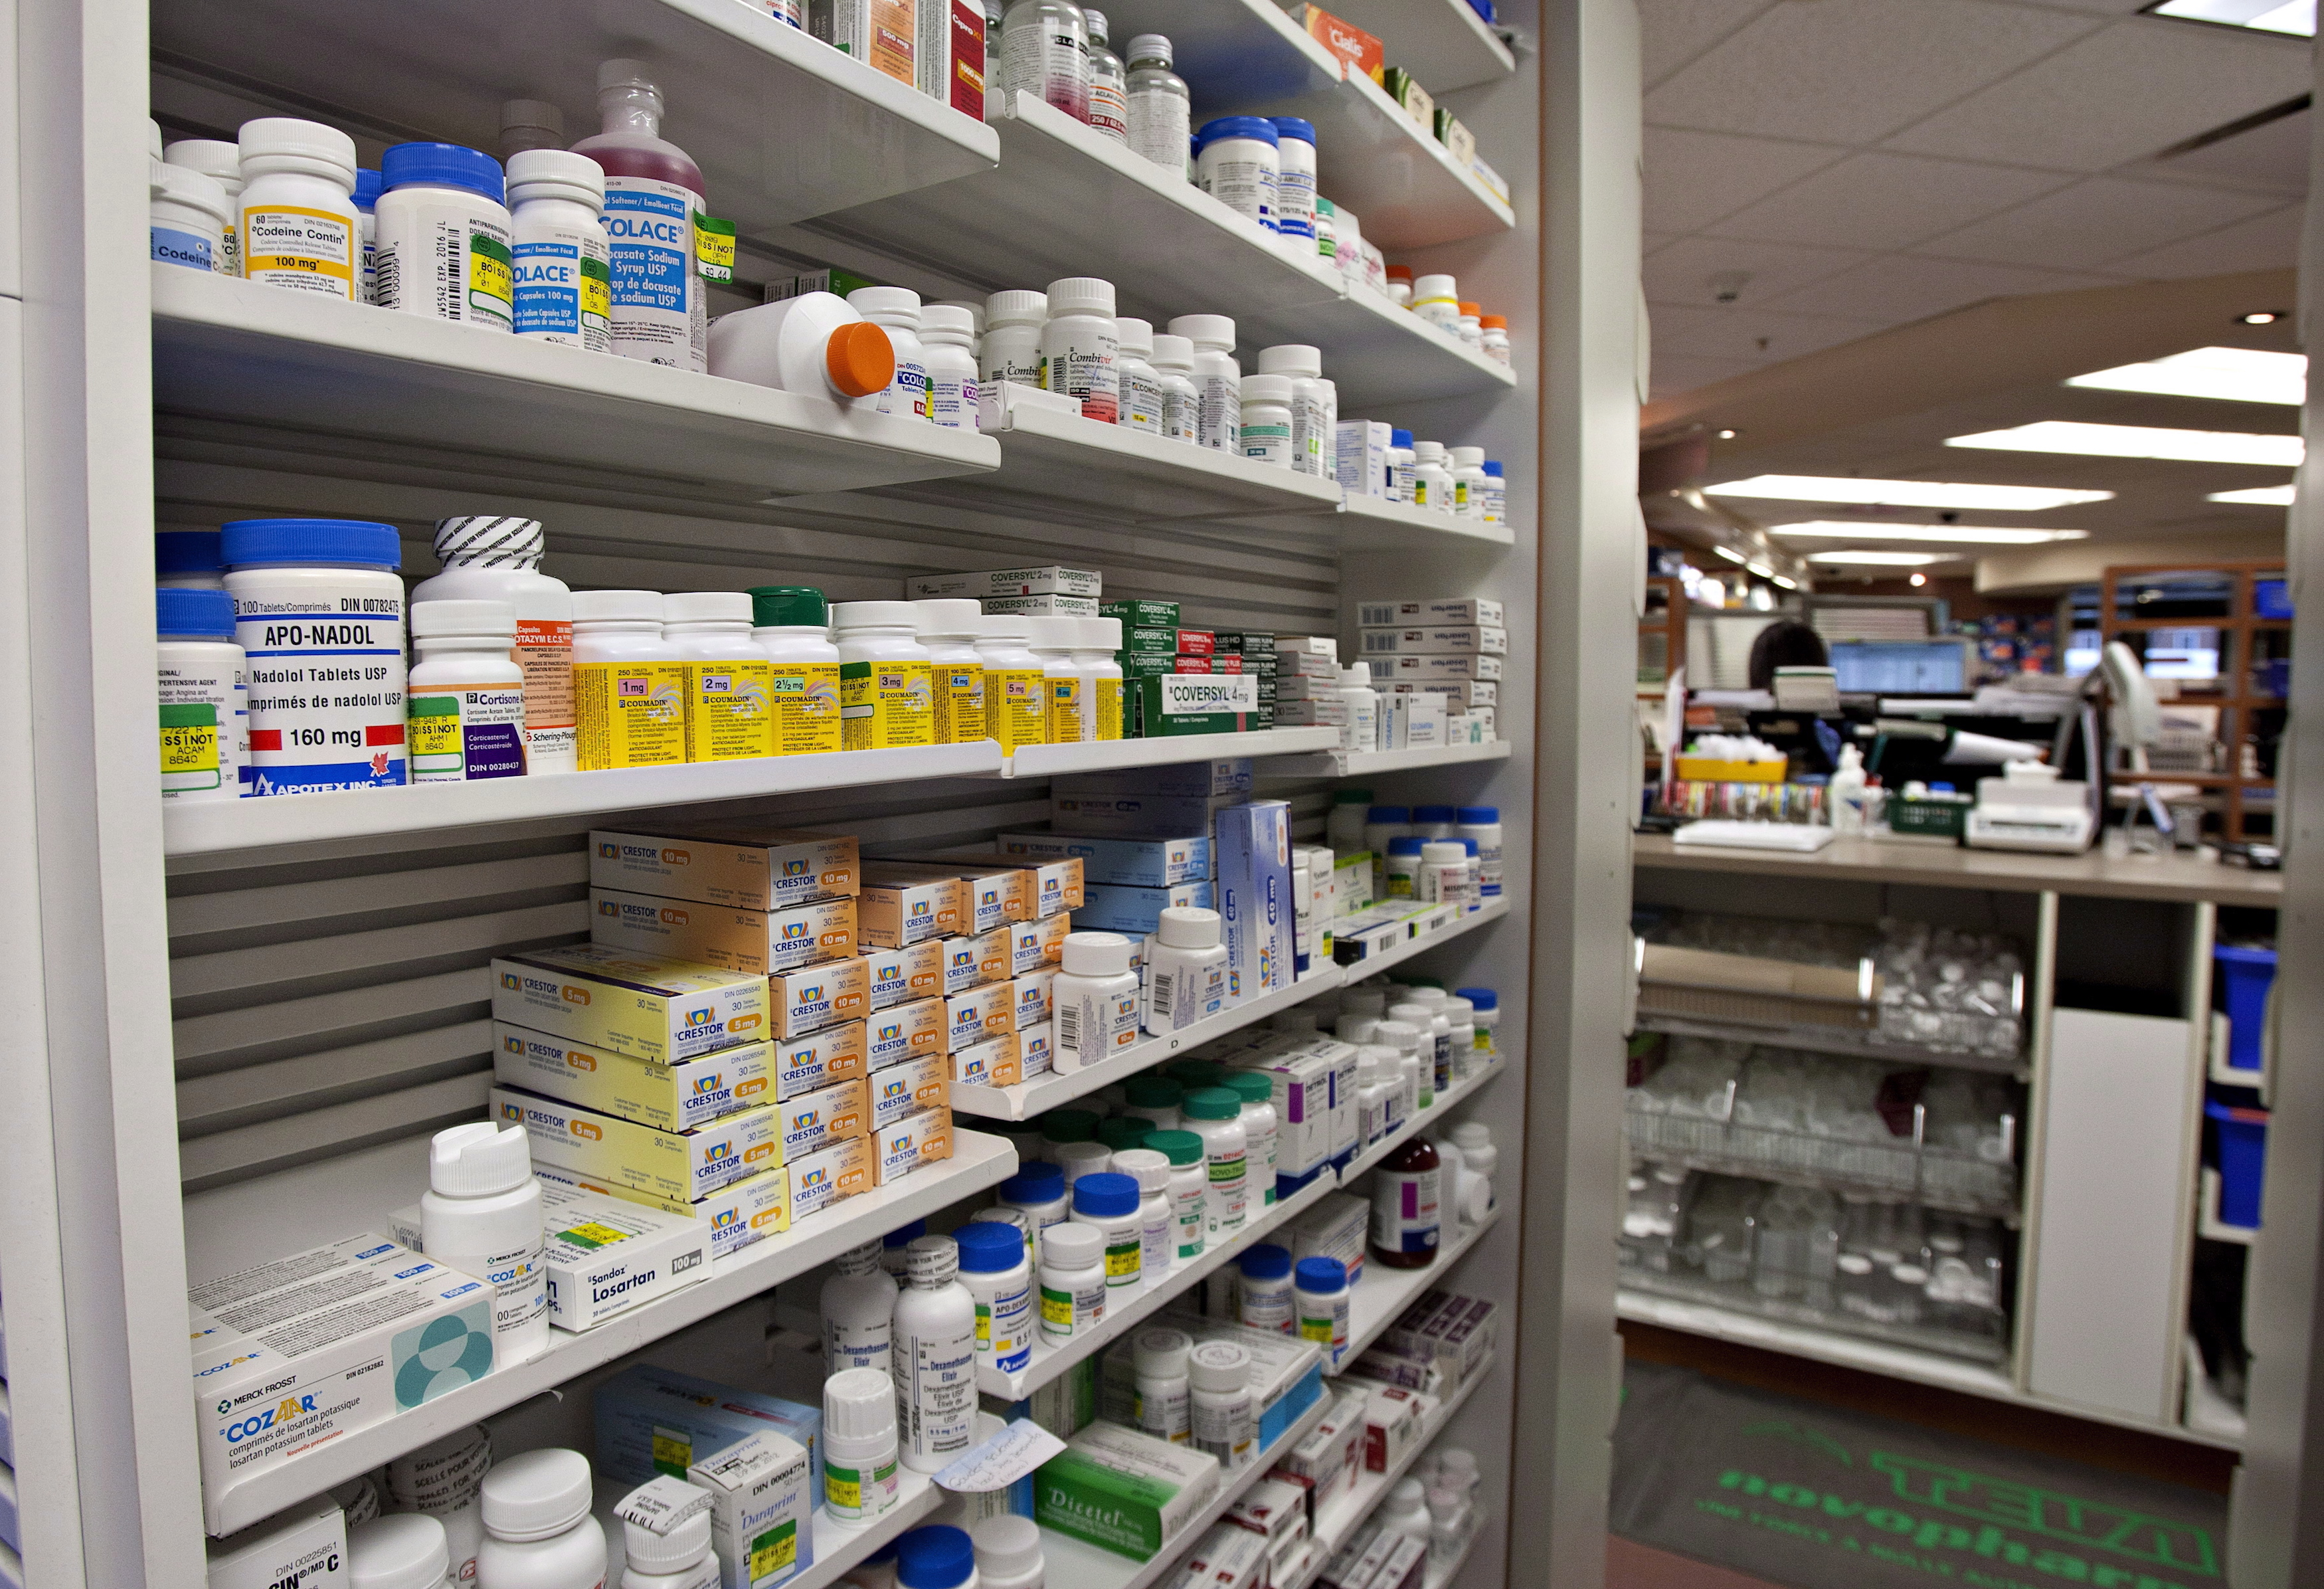 Canada's New Rules Aiming to Cut Drug Prices May Penalize Consumers